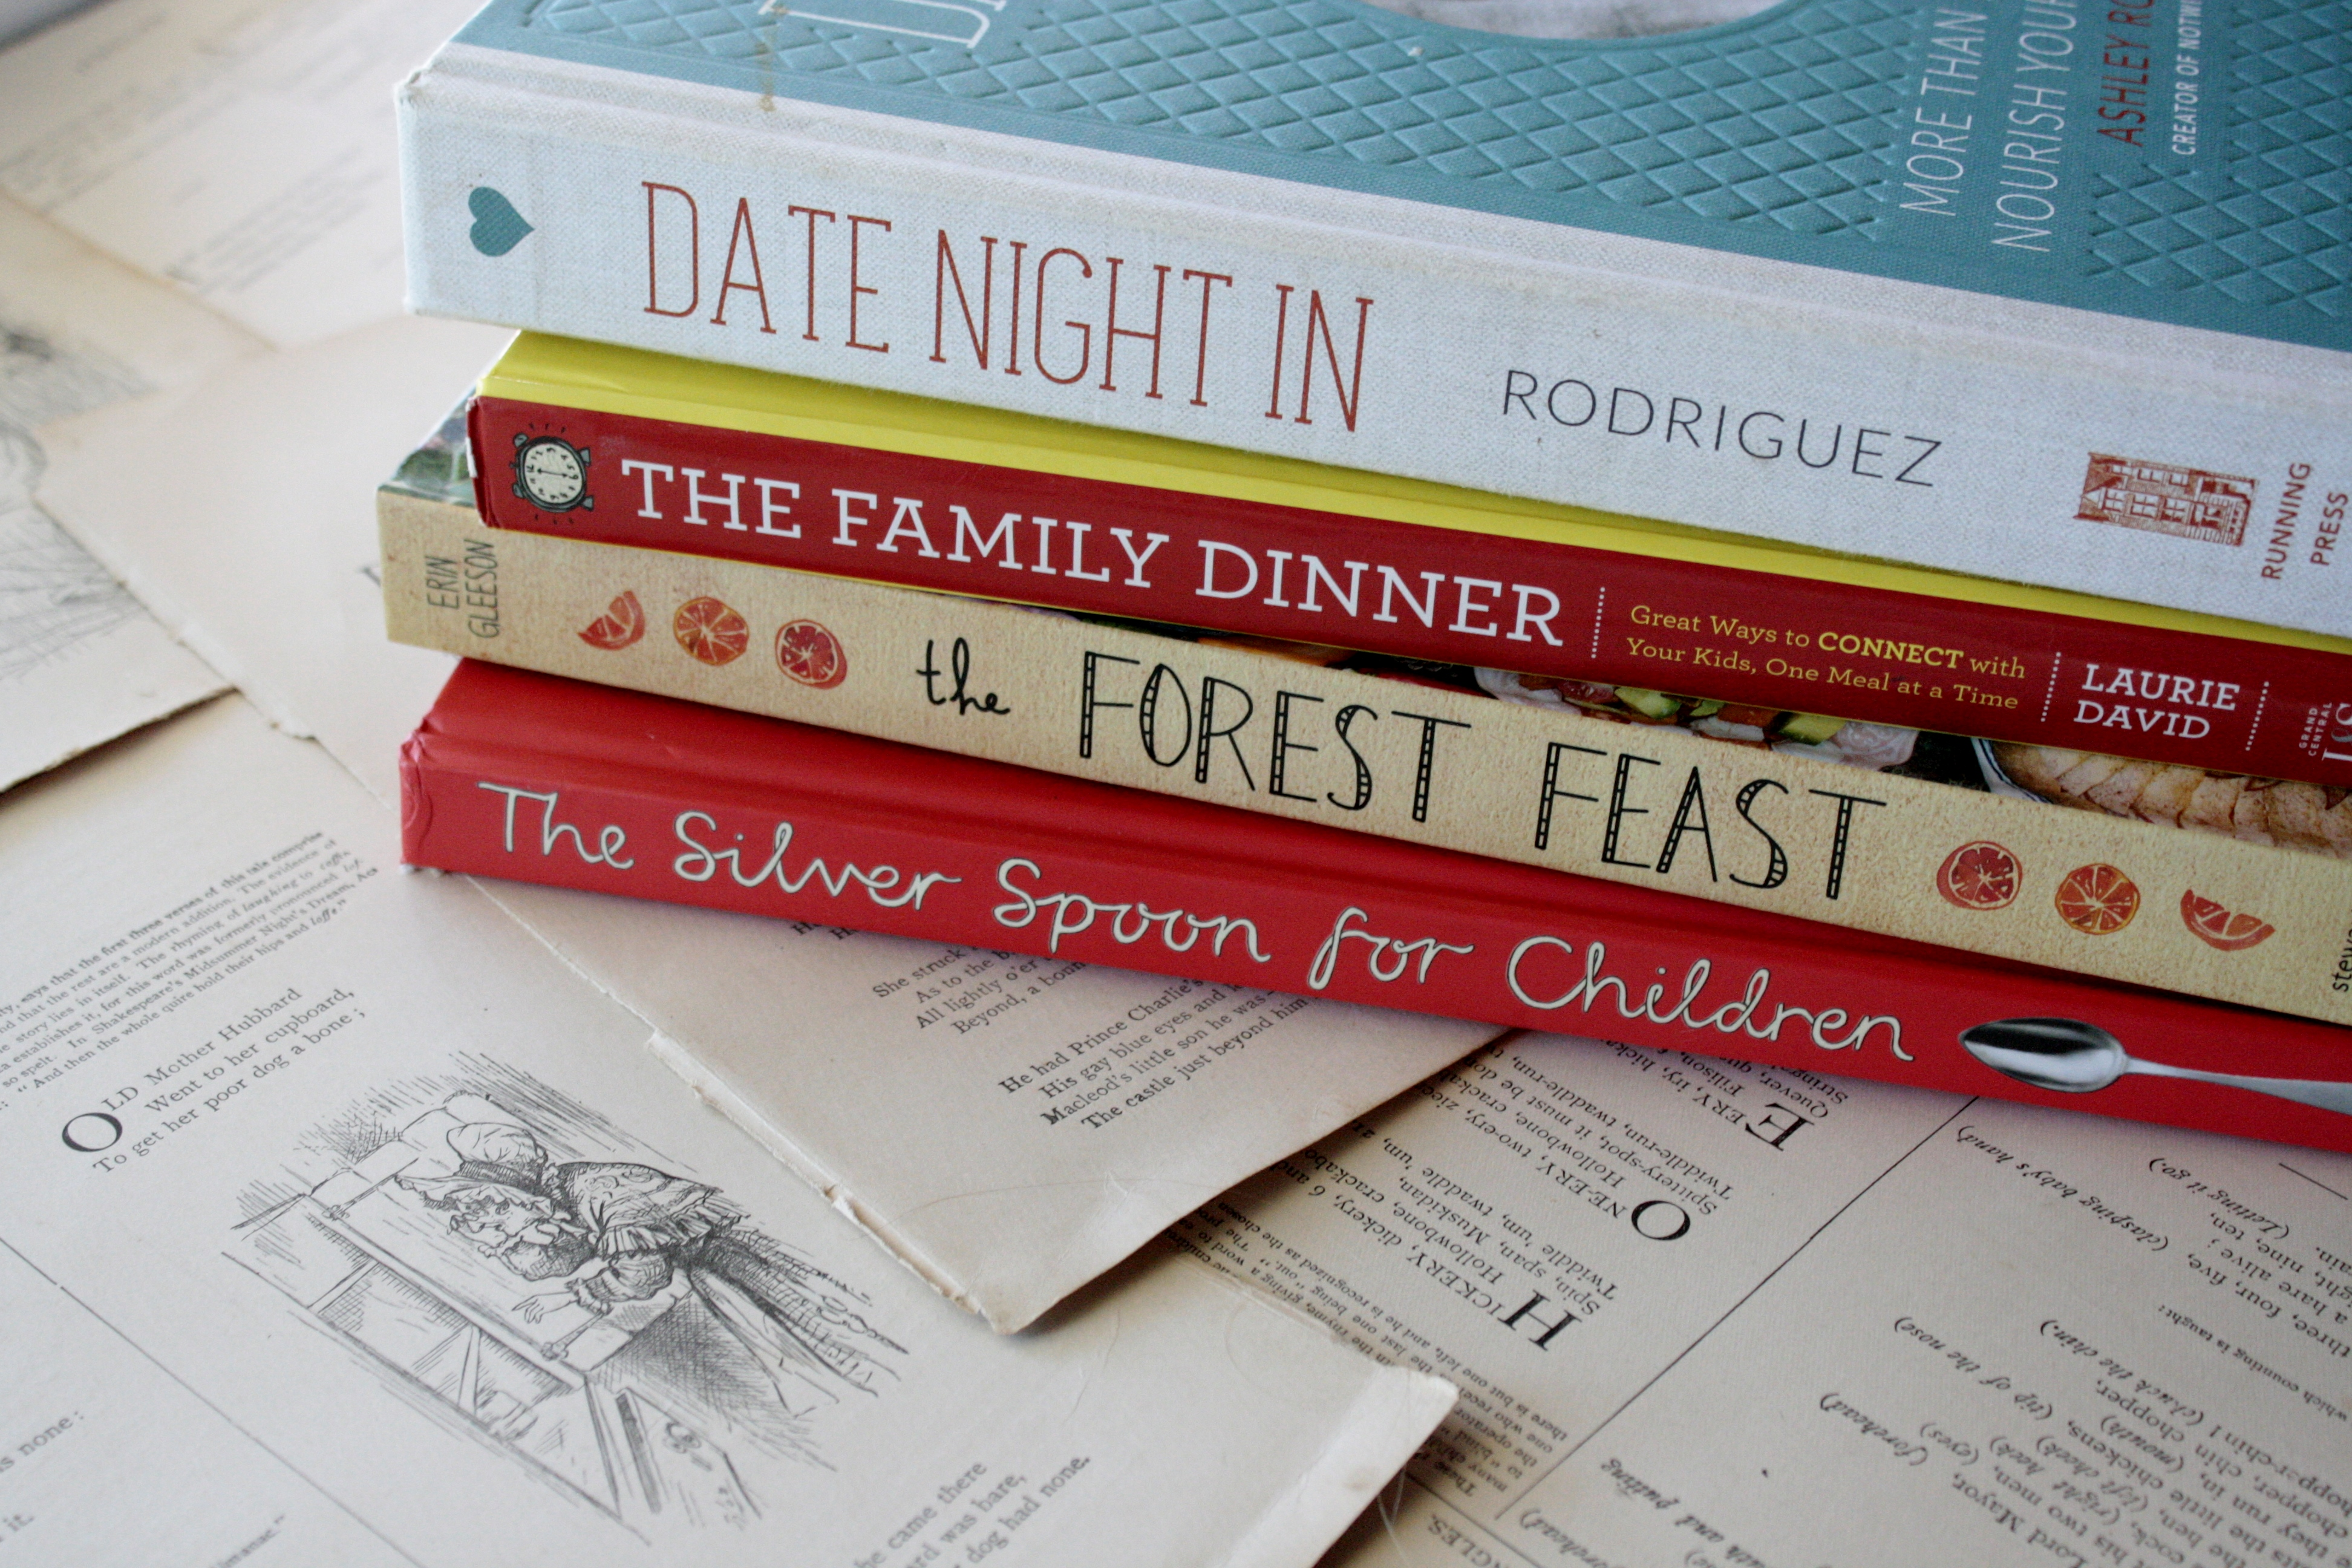 4 Cookbooks That Feed Your Family In More Way Than One